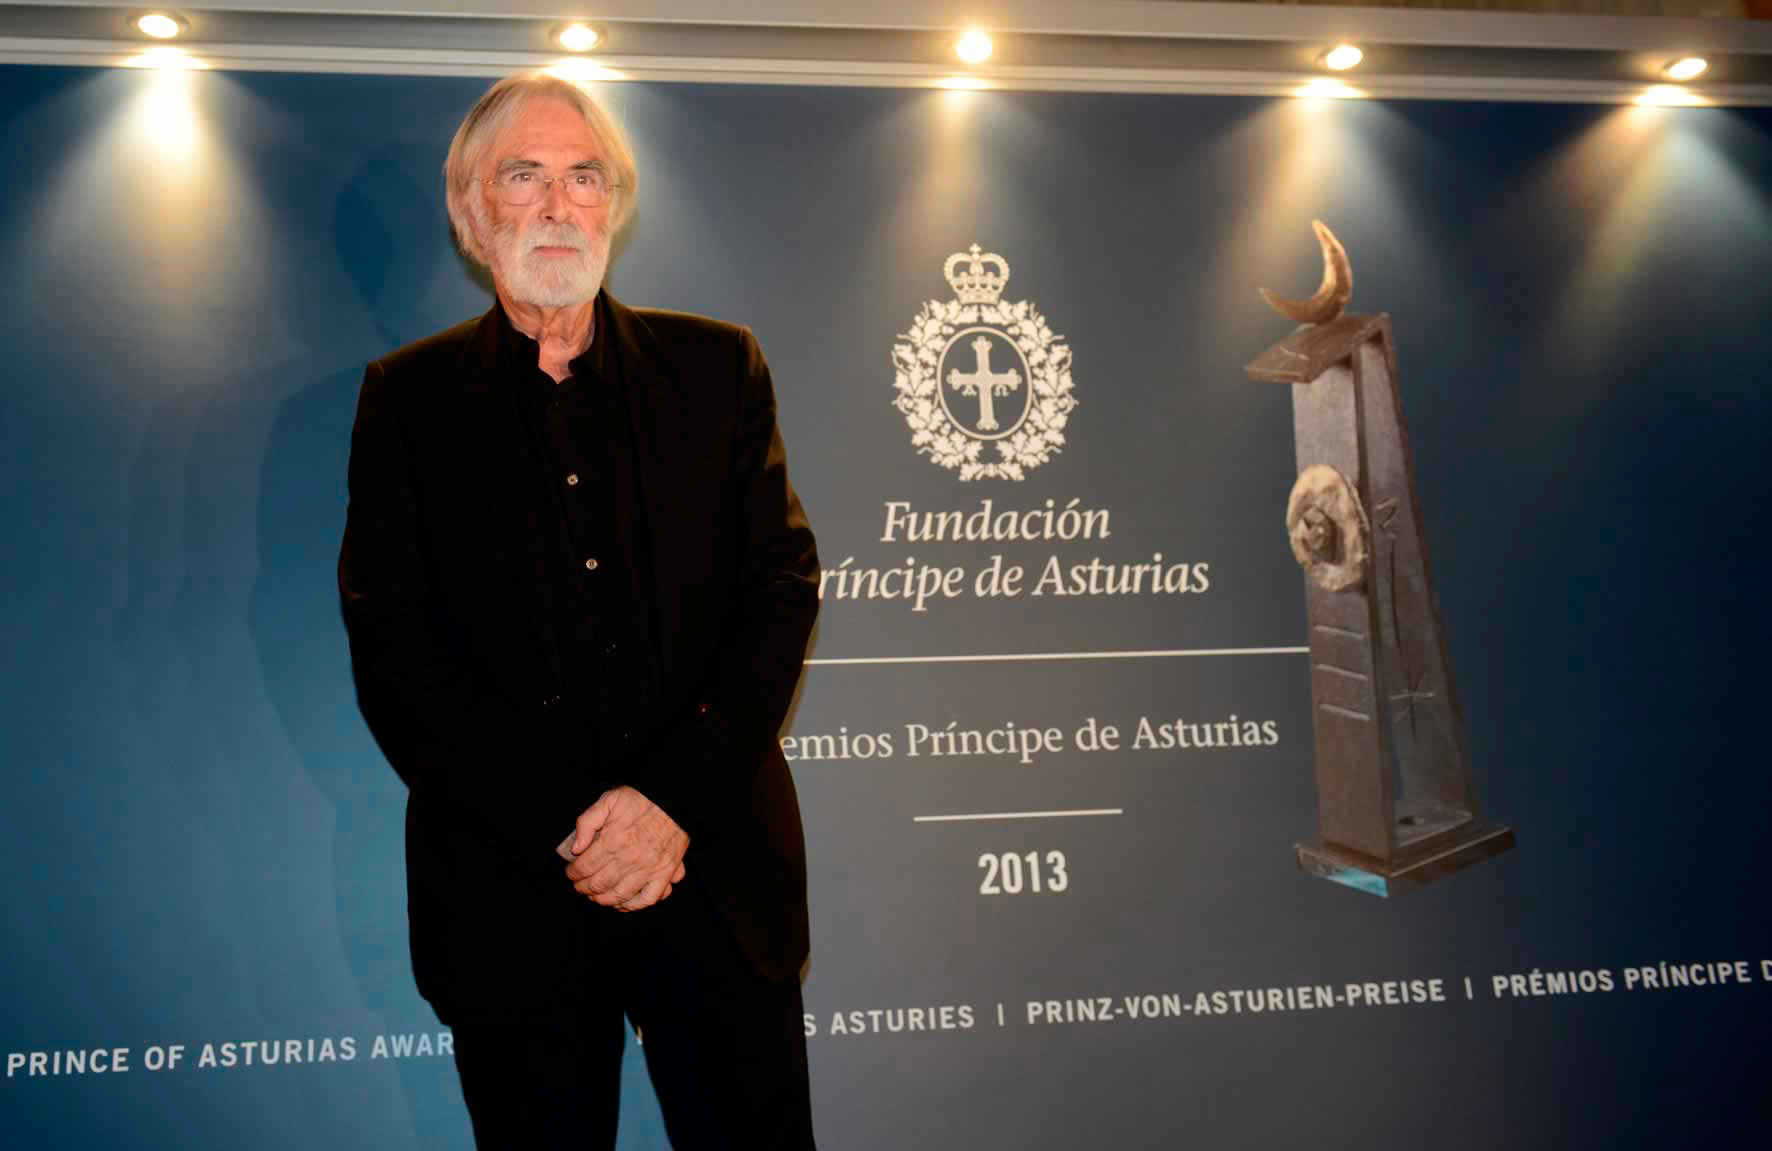 Arrival of Michael Haneke